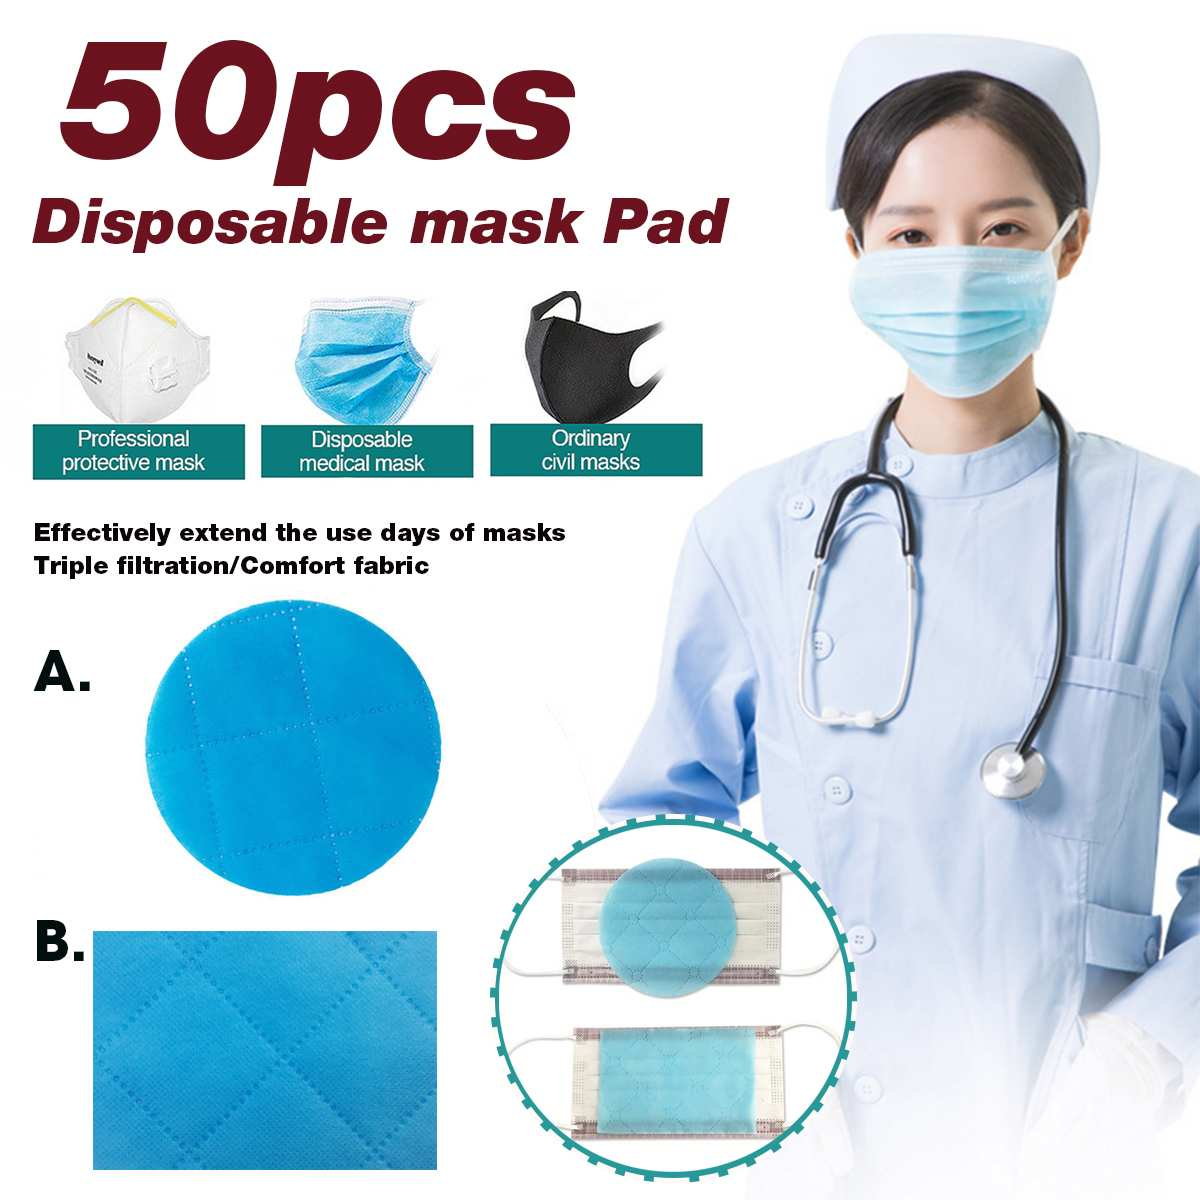 50Pcs Disposable 3 Layer Masks Gasket Anti PM2.5 Anti Influenza Breathing Safety Replacement Pad For kf94 N95 KN95 All Face Mask